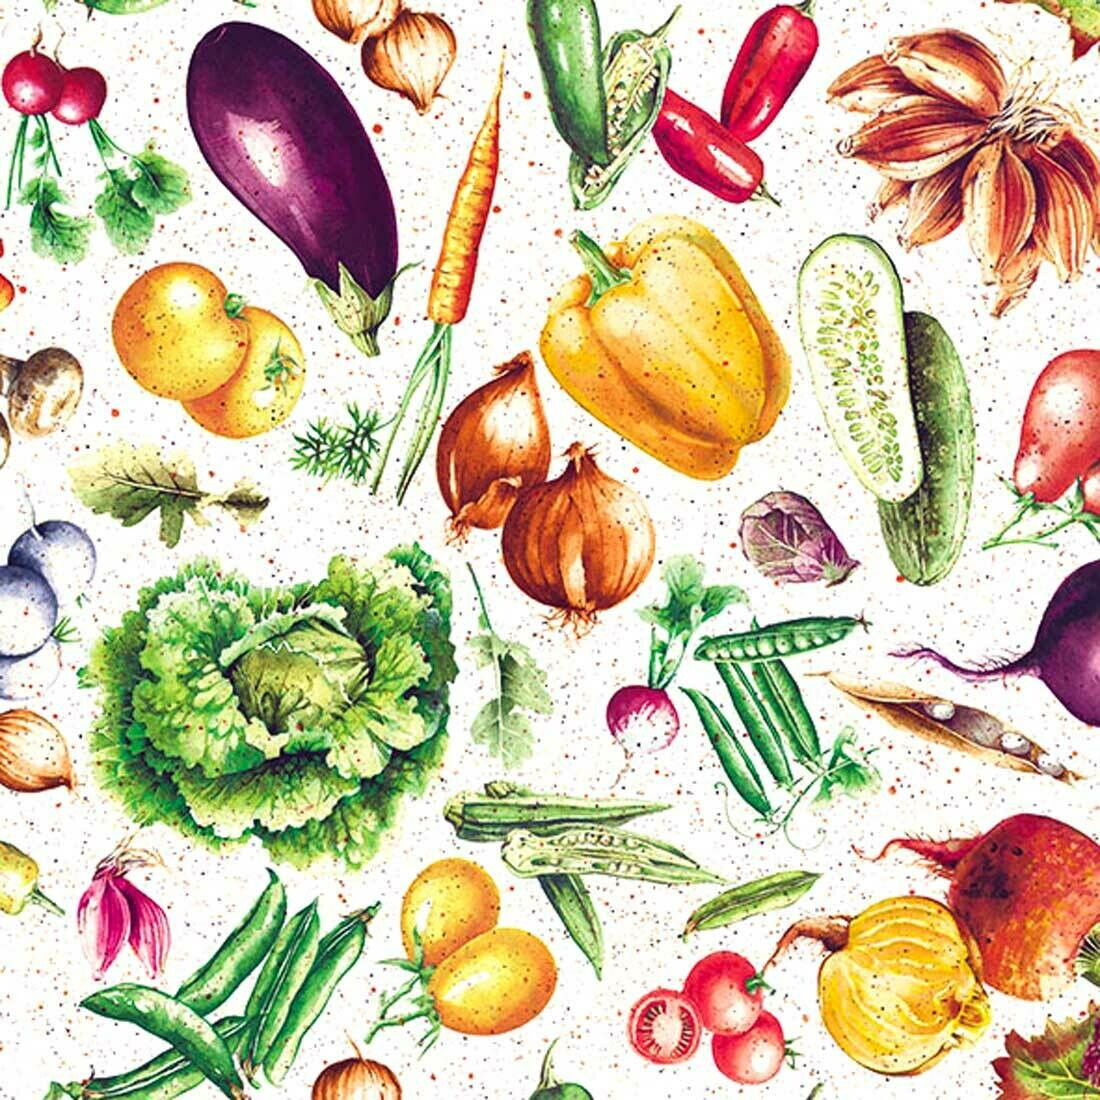 Decoupage Paper Napkins - Mixed Vegetables13x13 (1 Sheet)